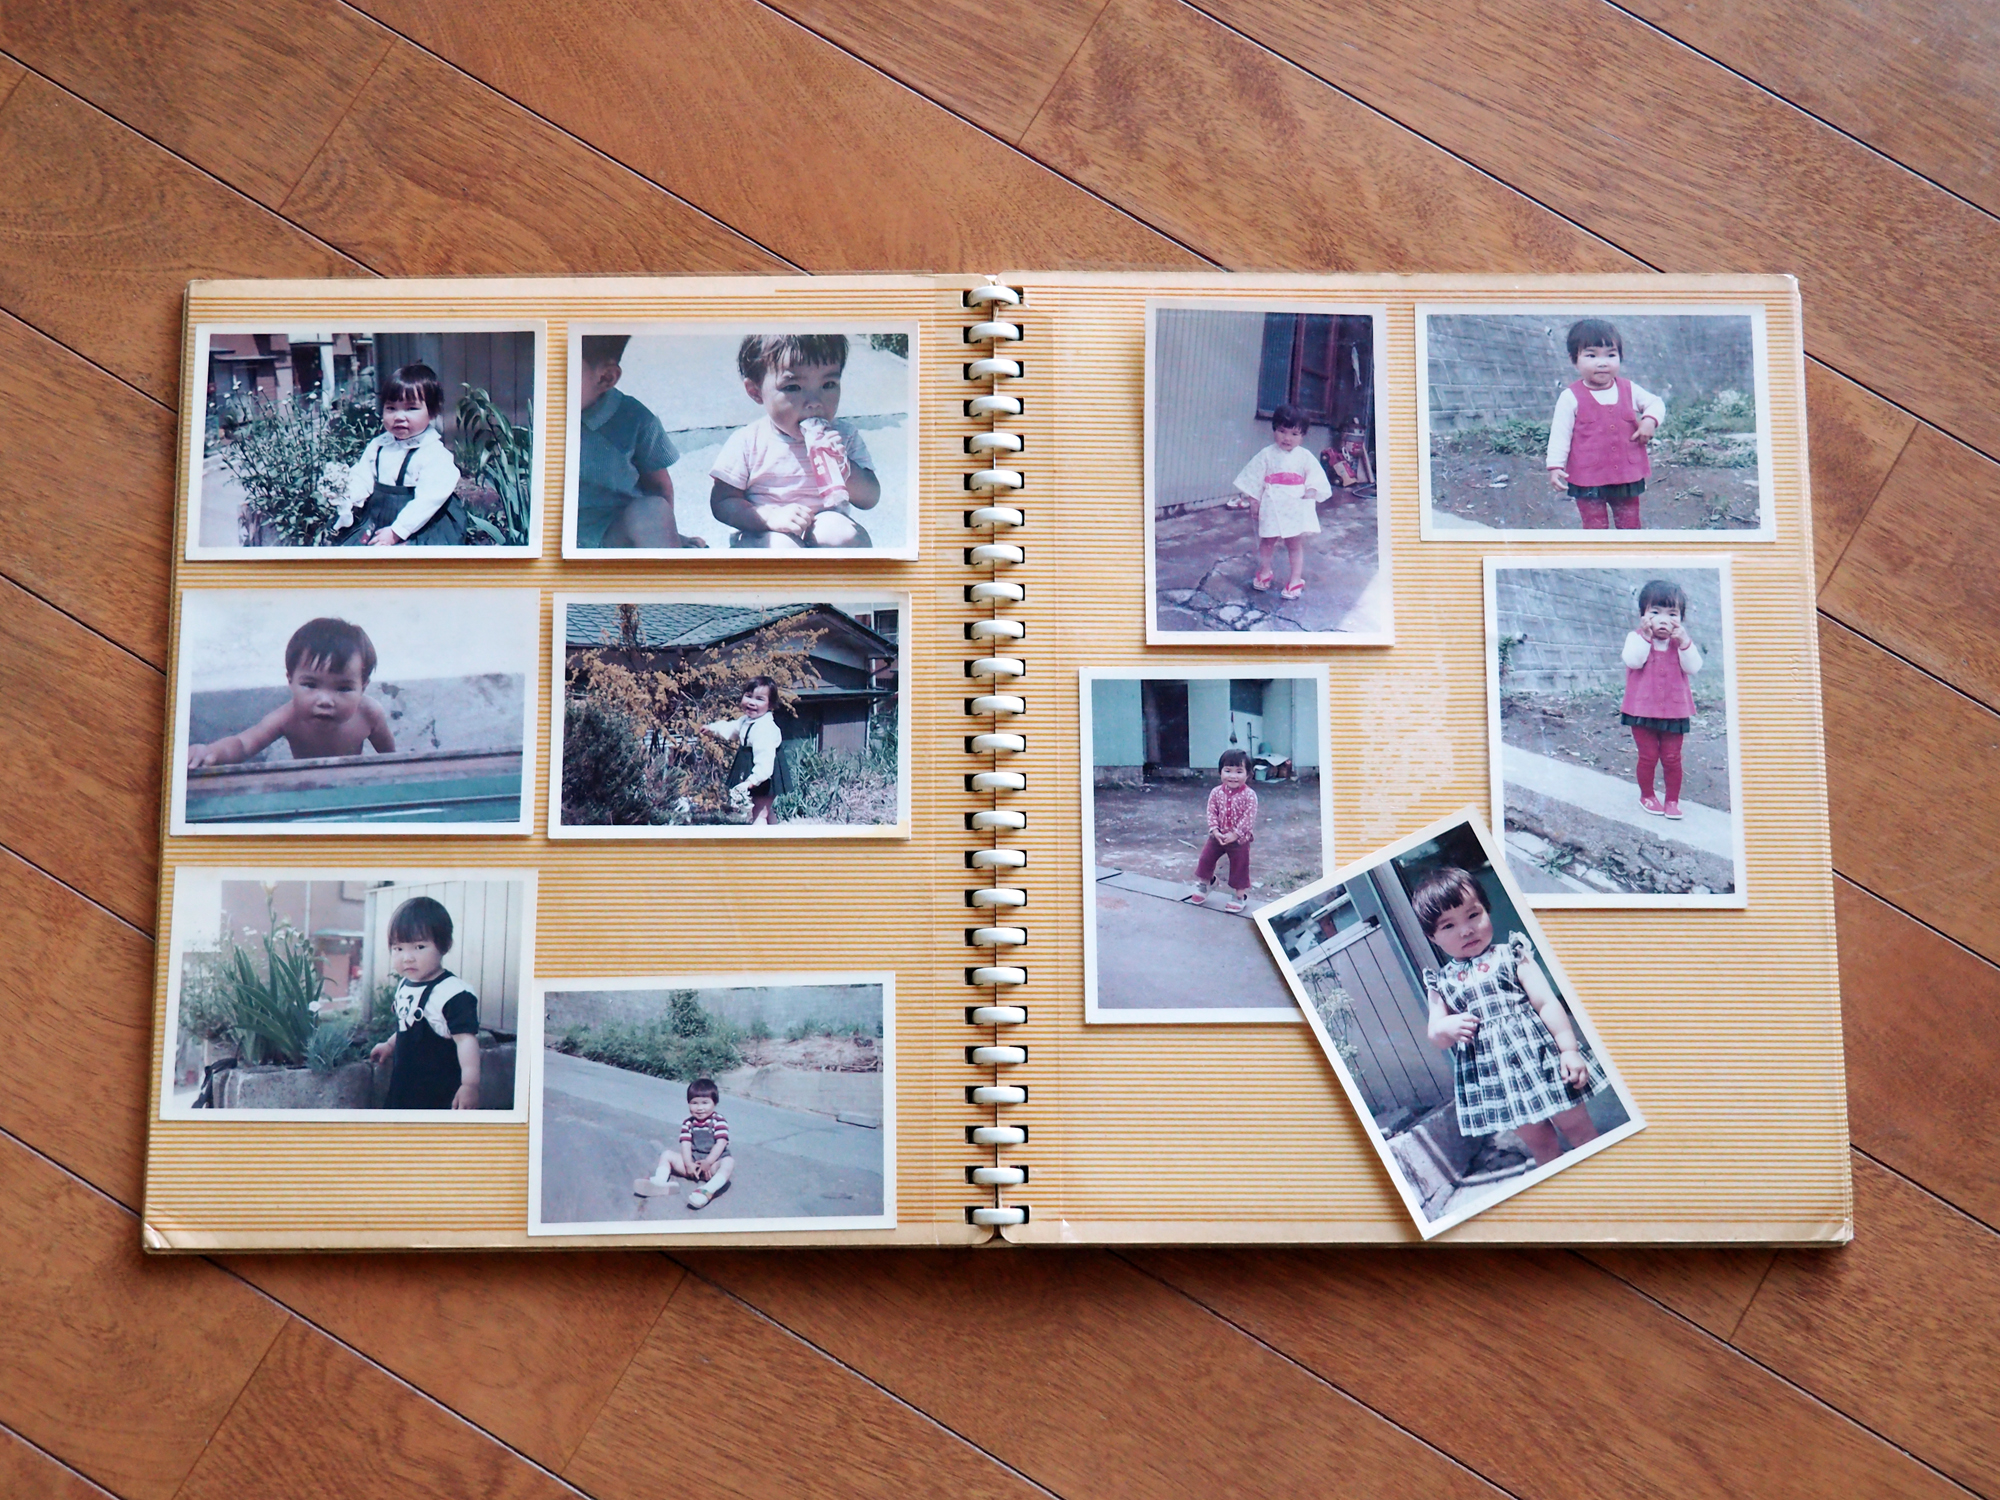 Sweet memories: It's not just the boys and girls of Showa who find things from this era nostalgic. | ISTOCK